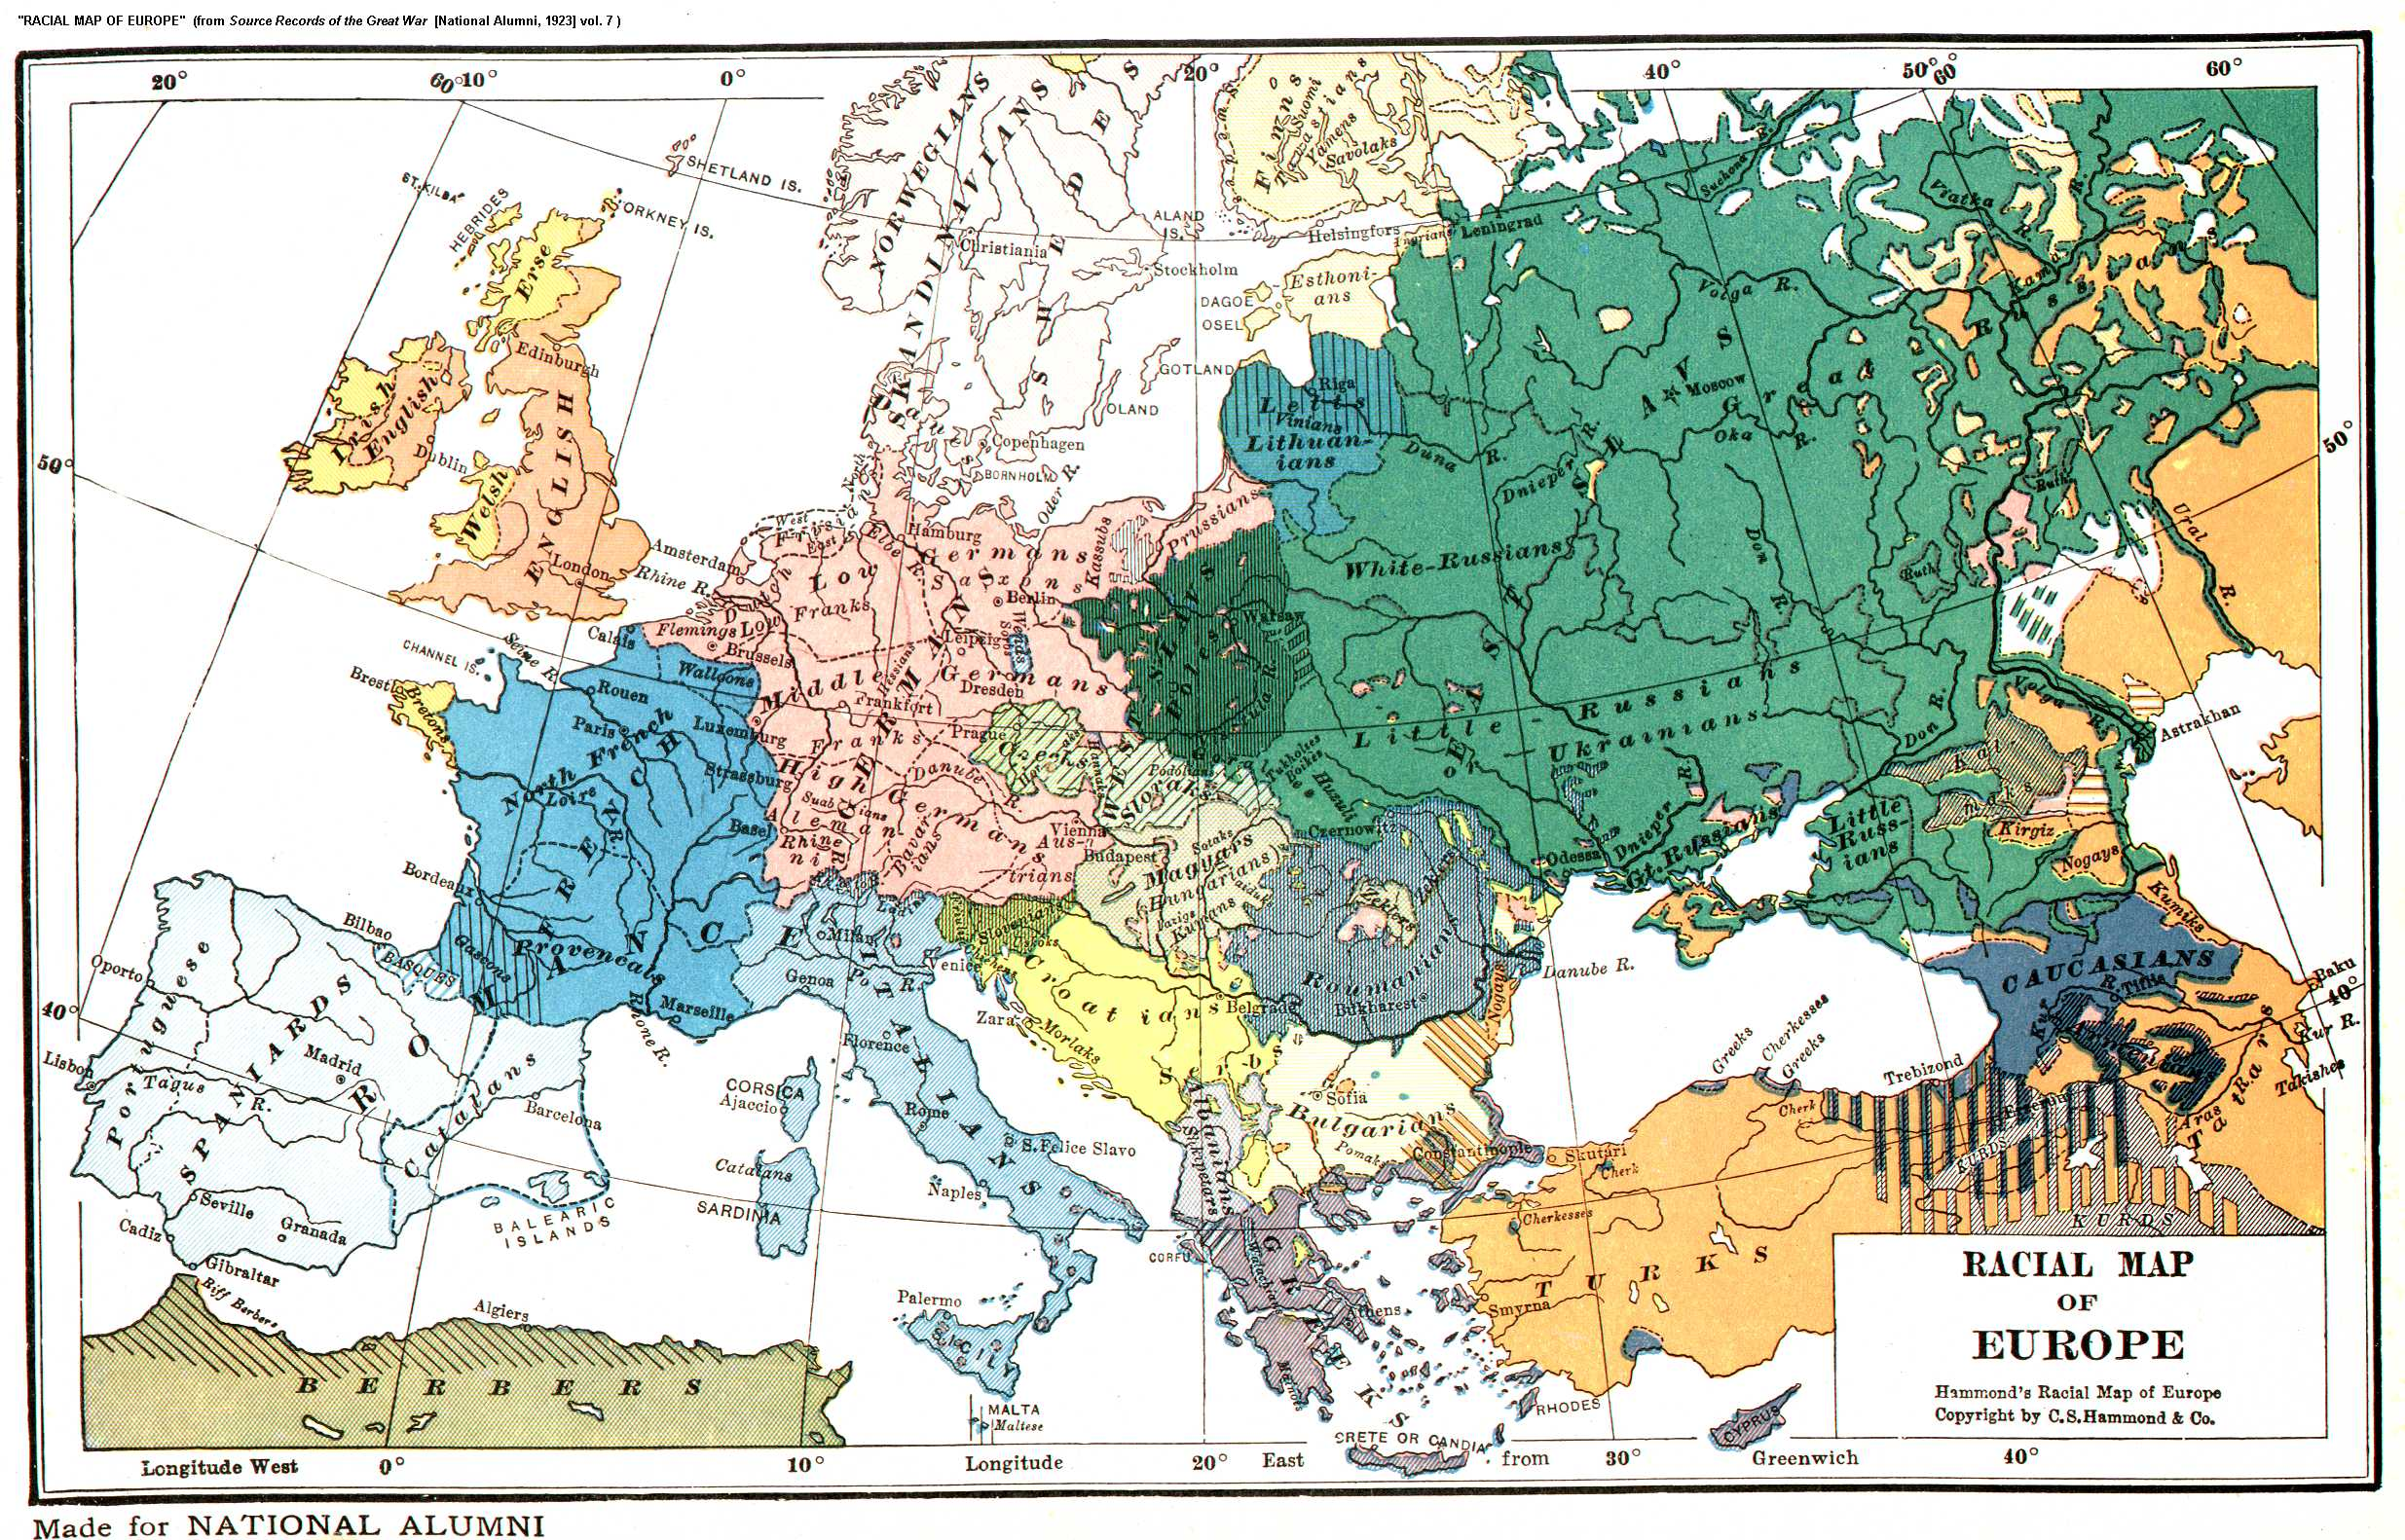 Racial Ethnic Map of Europe 1919